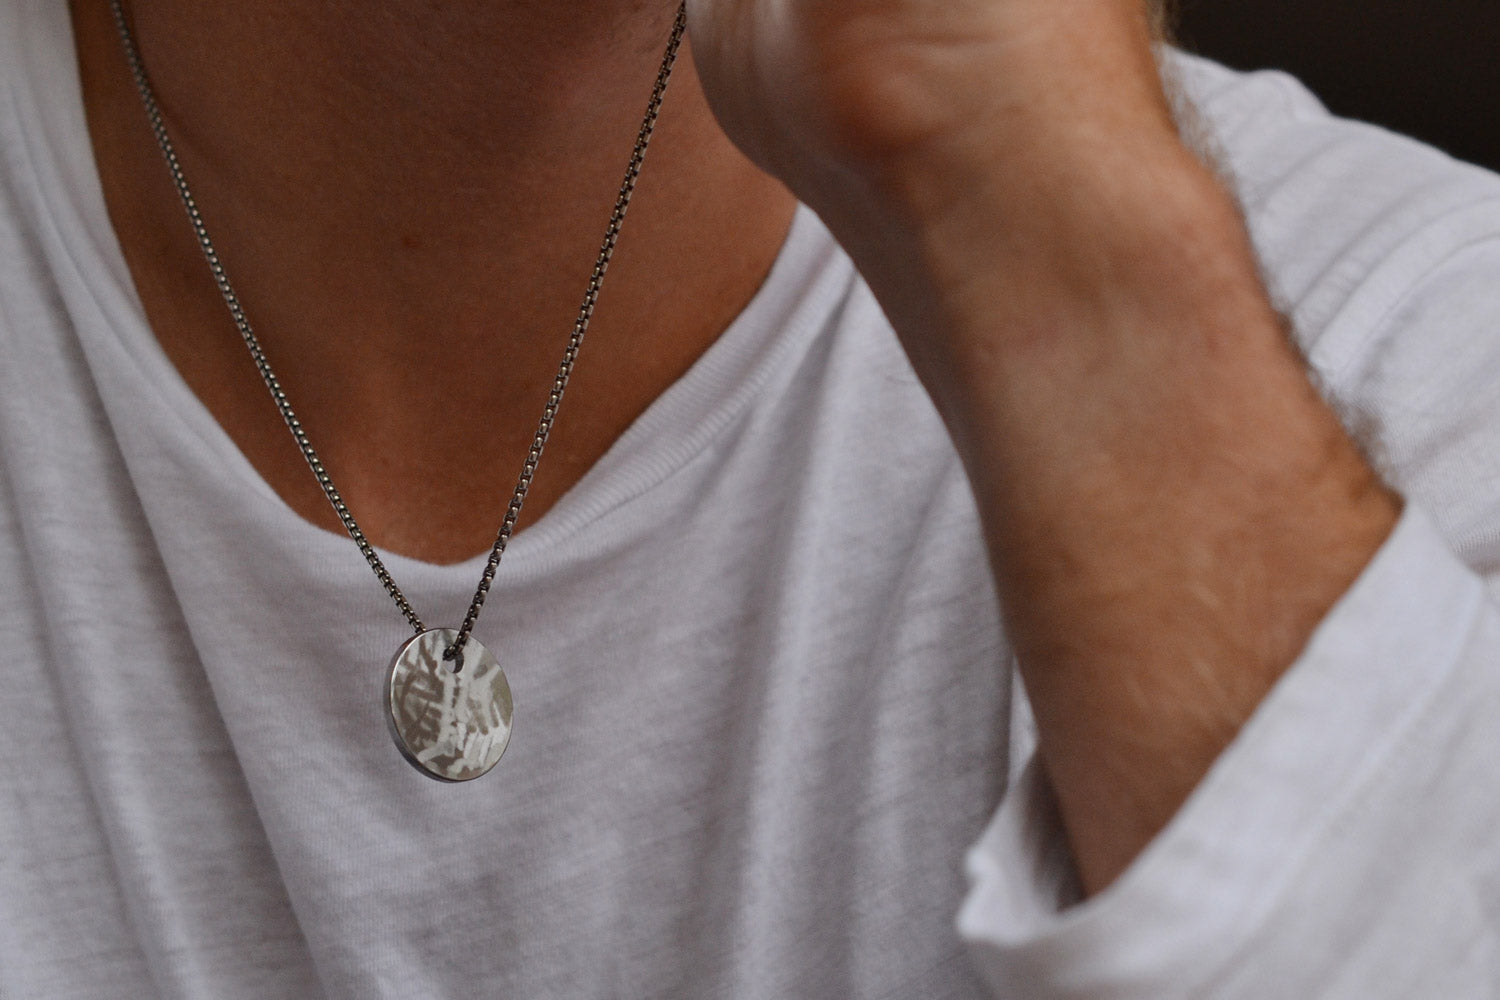 men's necklaces for gifting | Alice Made This